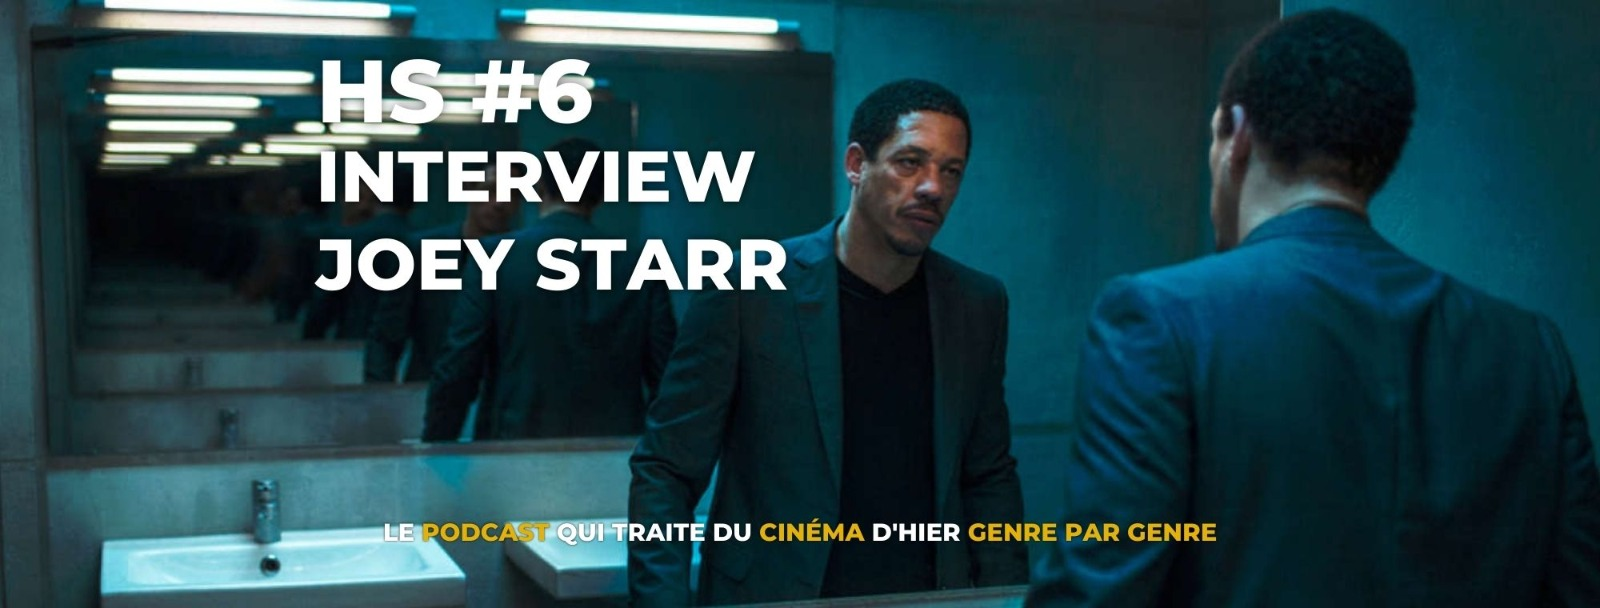 Parlons Péloches - HS #6 Interview Joey Starr